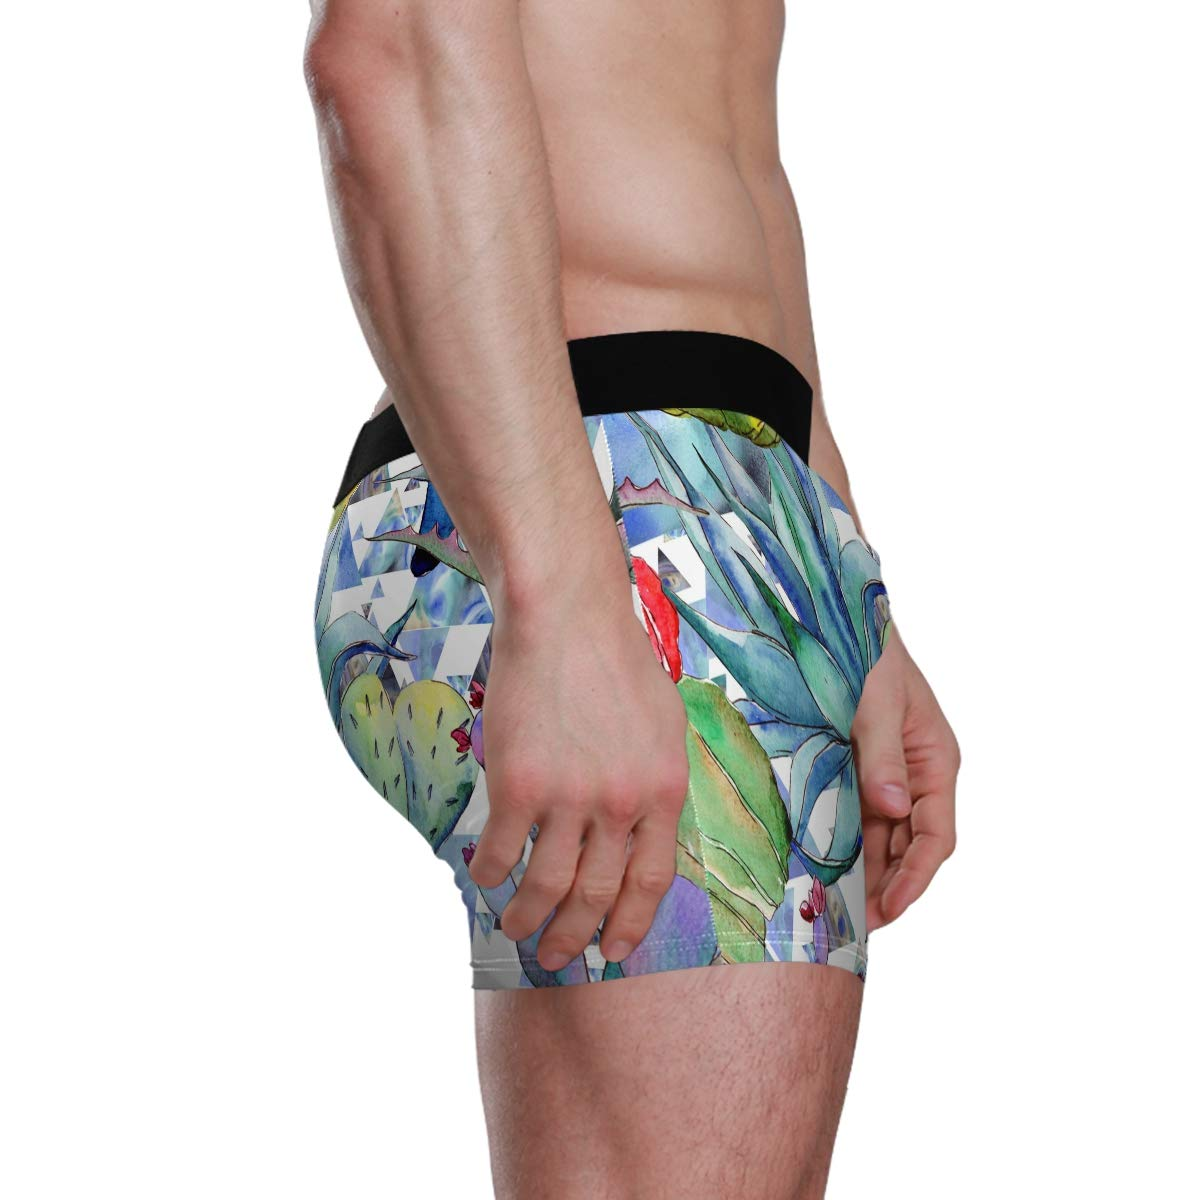 Vipsk Seamless Stretch Mens Polyester Boxer Briefs Underwear 1-Pack Set Tropical Plants Watercolor